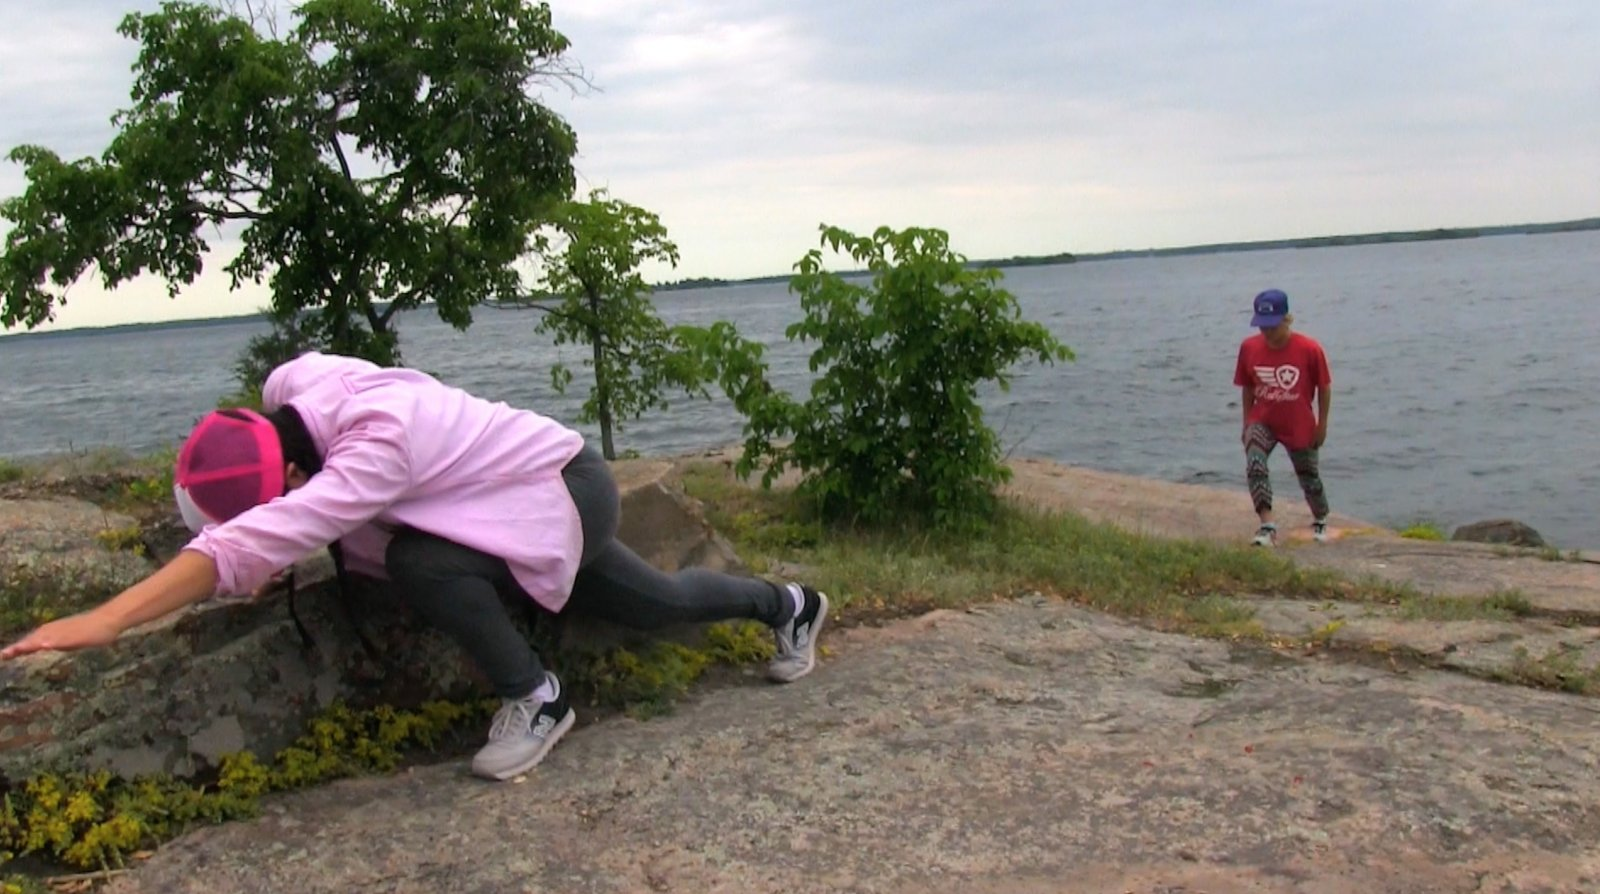 Tanya Lukin Linklater, How we mark land and how land marks us, 2017, site-specific performance